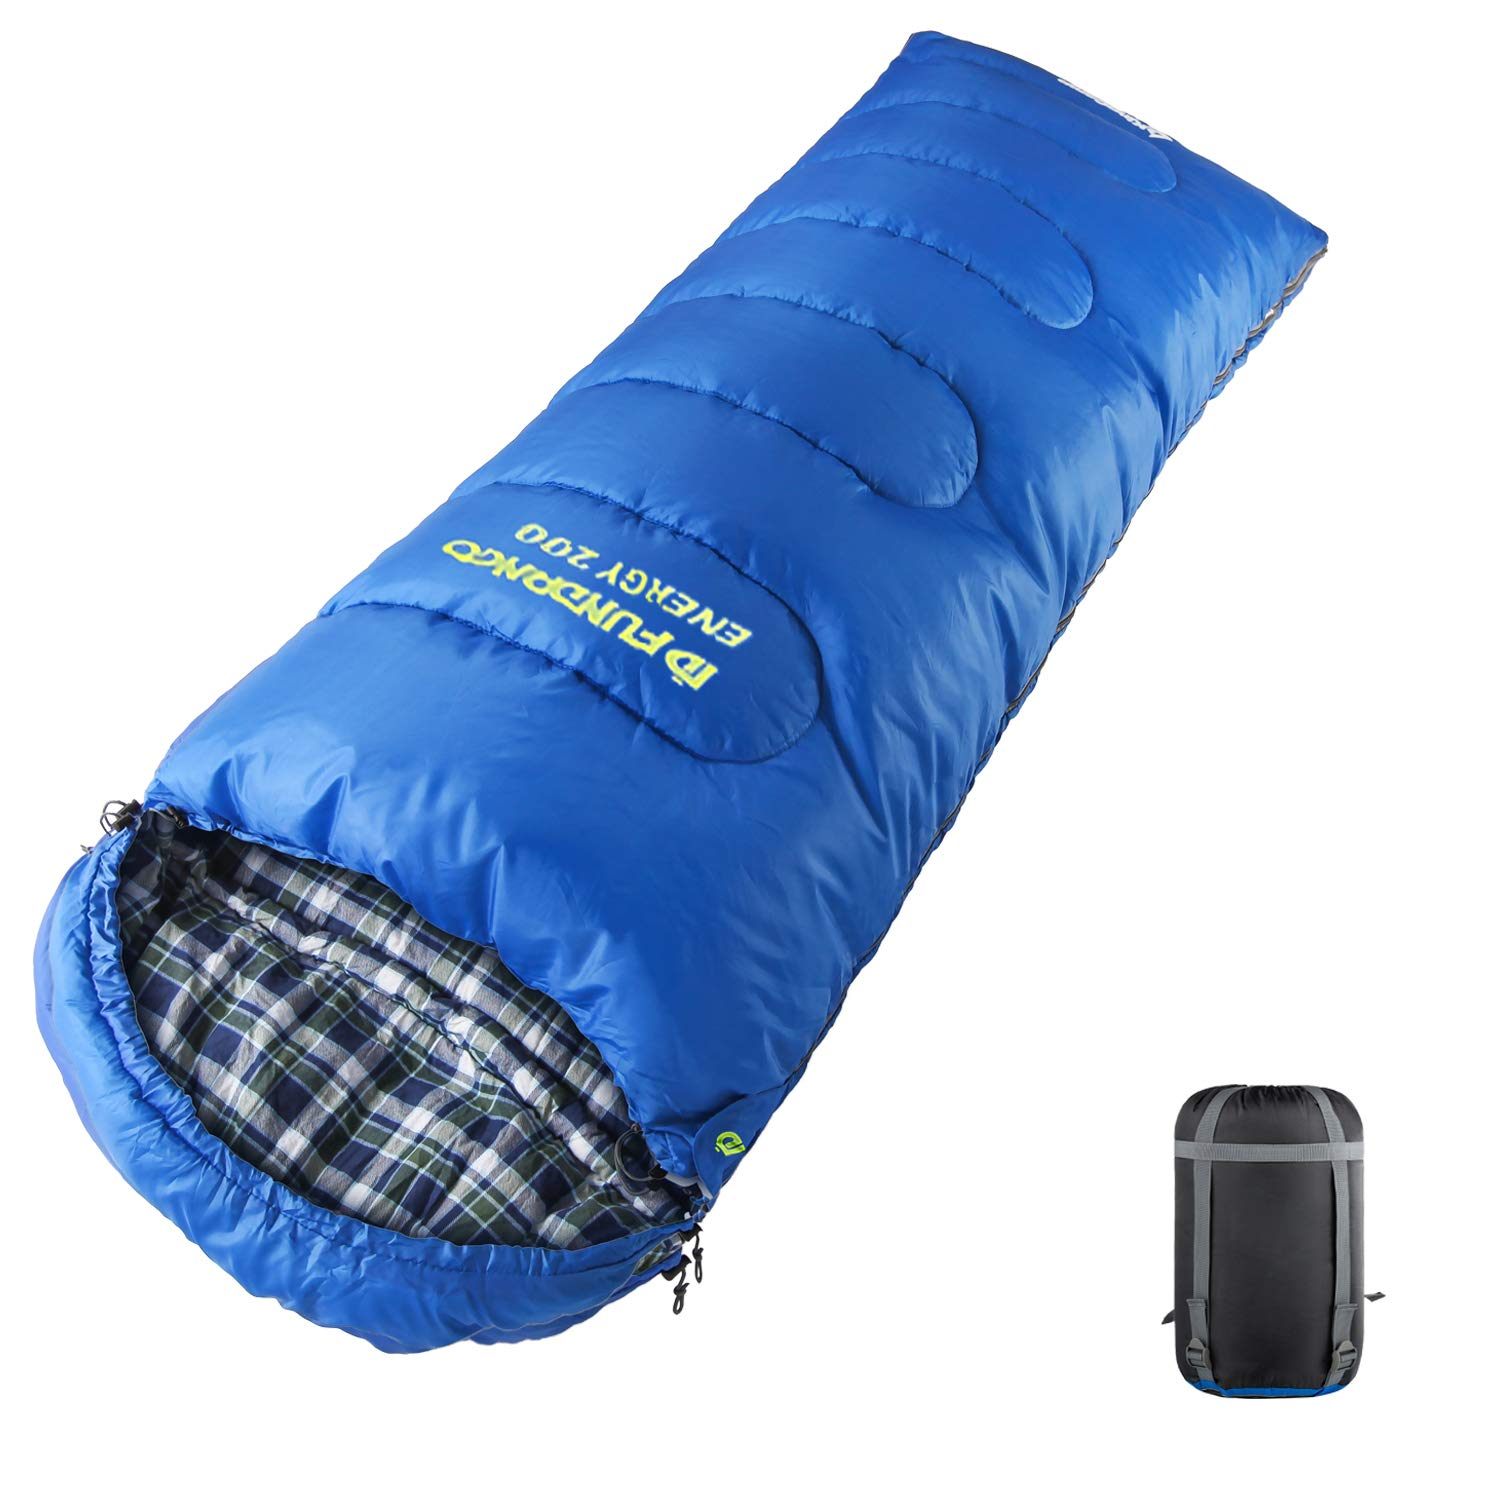 FUNDANGO Lightweight 3-season Adult Sleeping Bag 43F/6C Portable Comfort with Compression Bag for Camping, Hiking, Backpacking